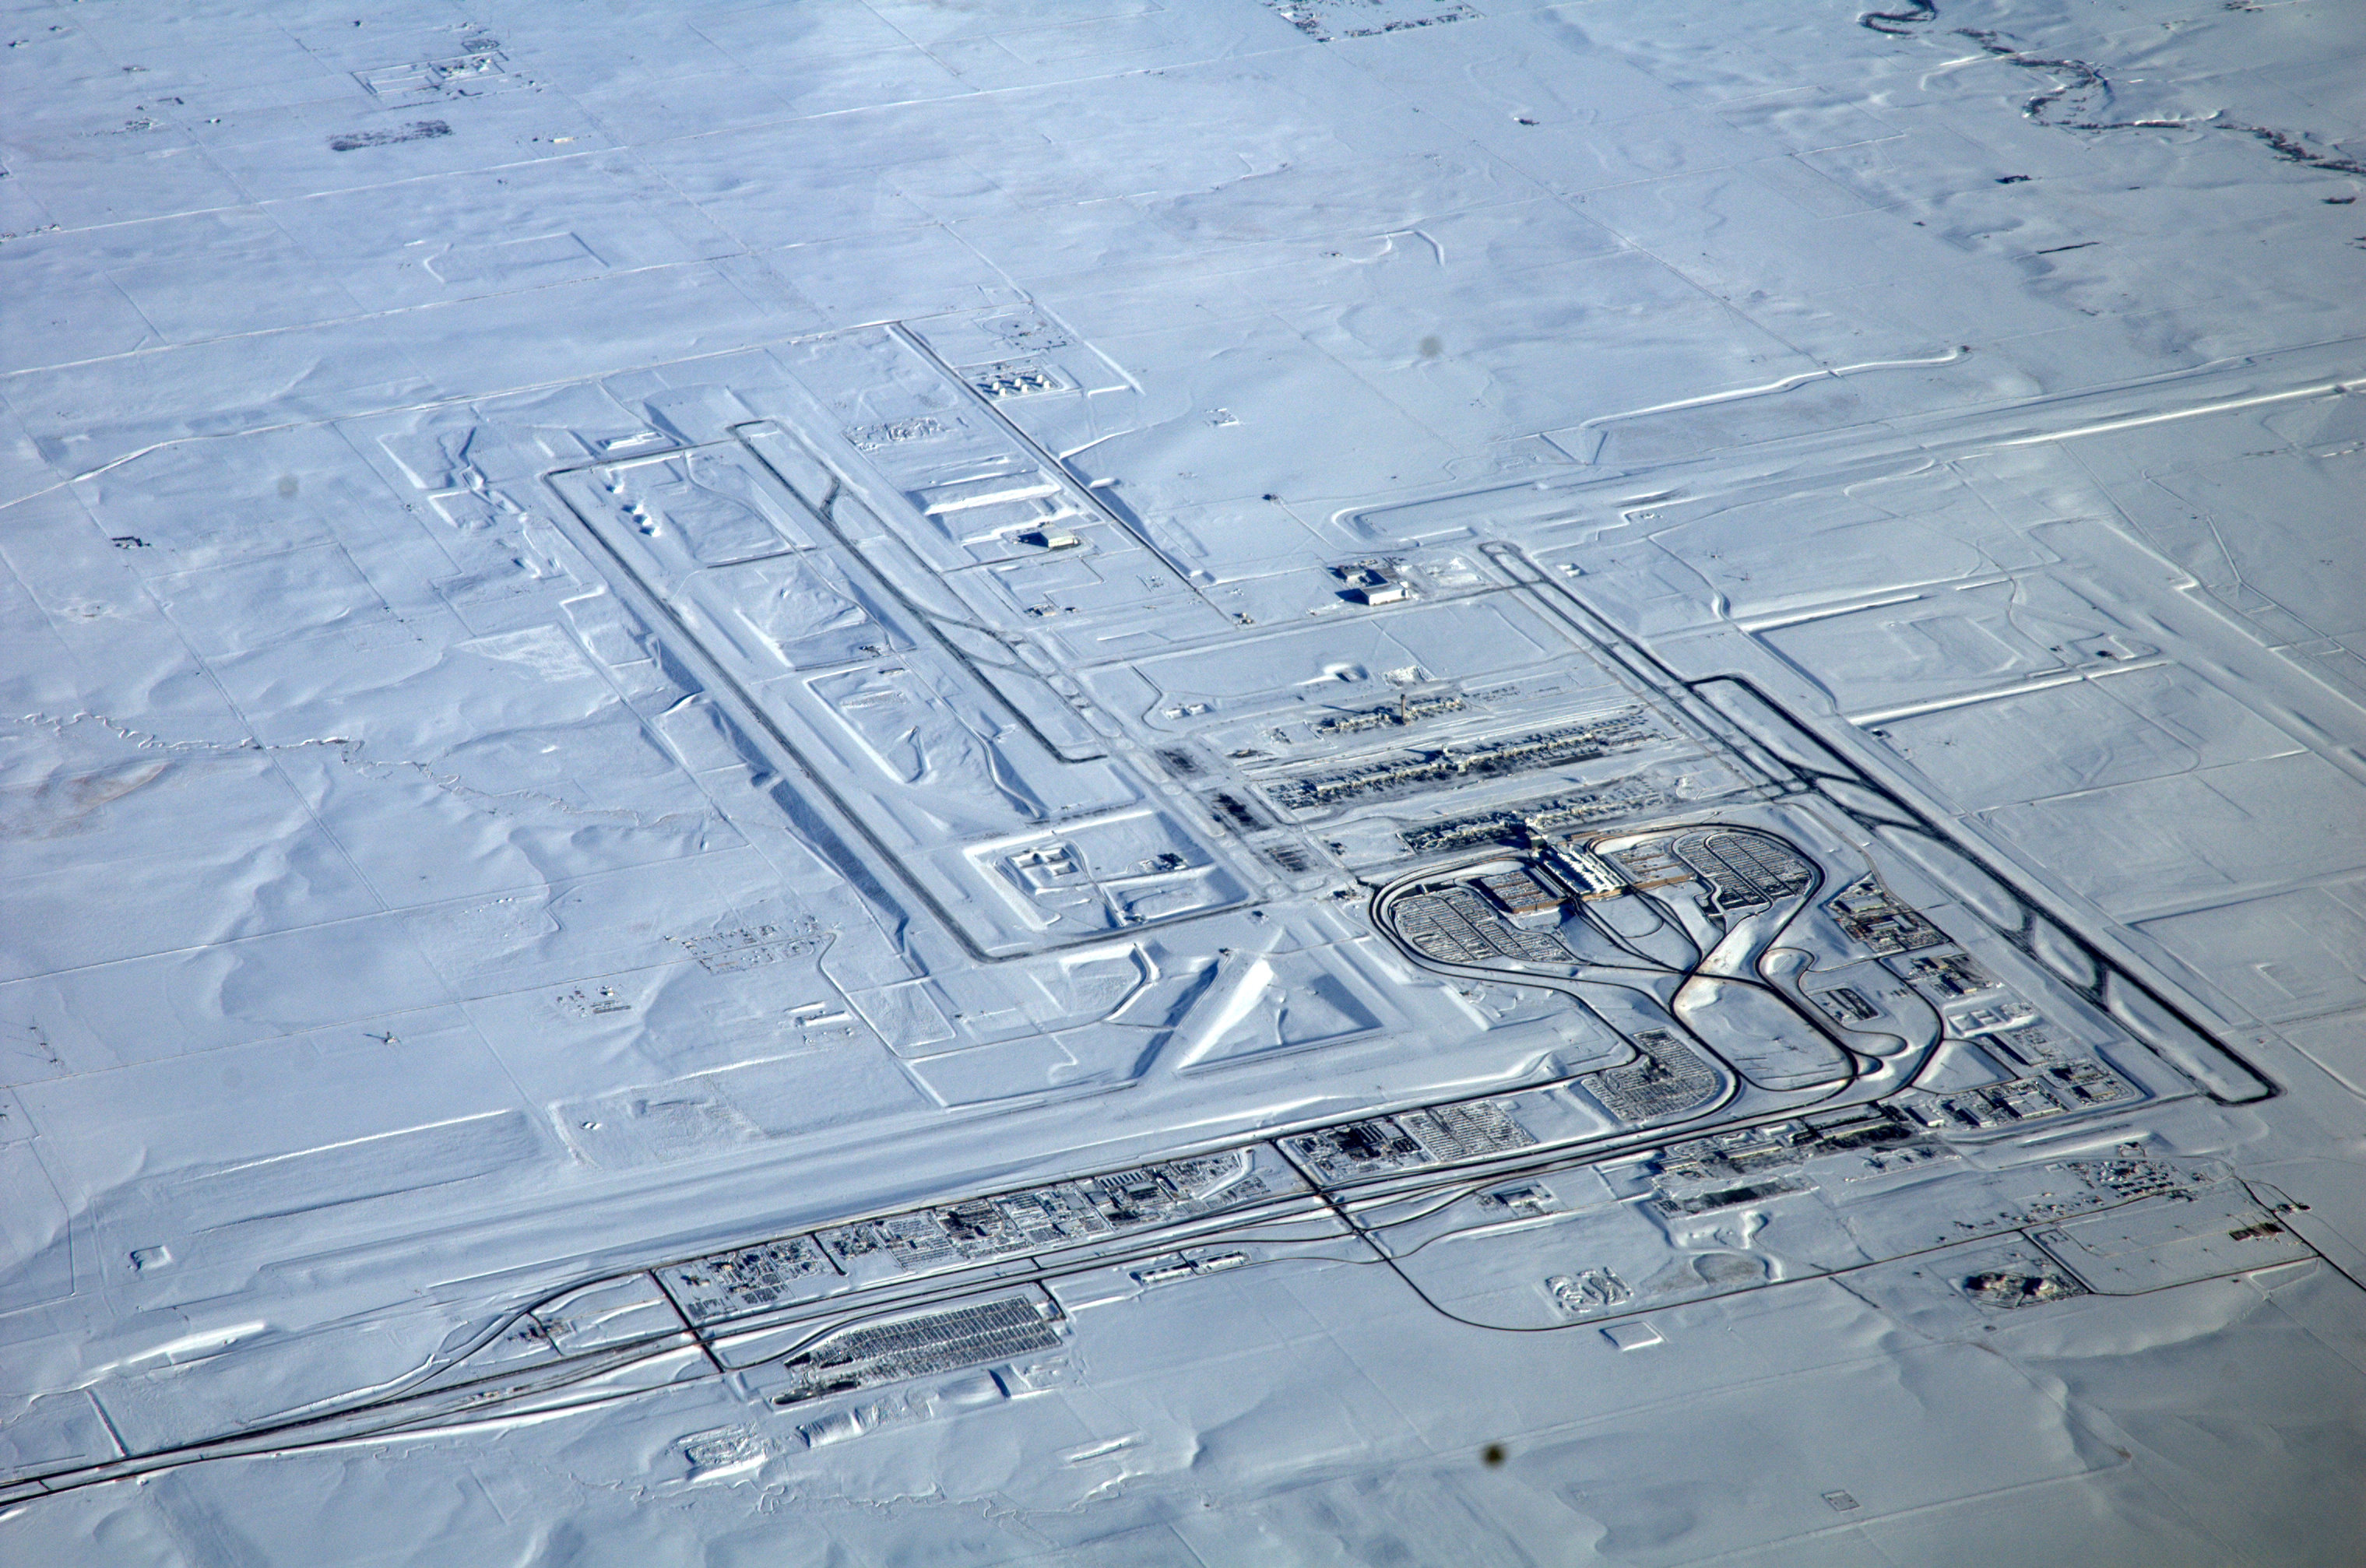 denver international airport Coordinates: n39°5170' / w104°4039' located 16 miles ne of denver, colorado on 33531 acres of land view all airports in colorado surveyed elevation is 5433 feet msl.